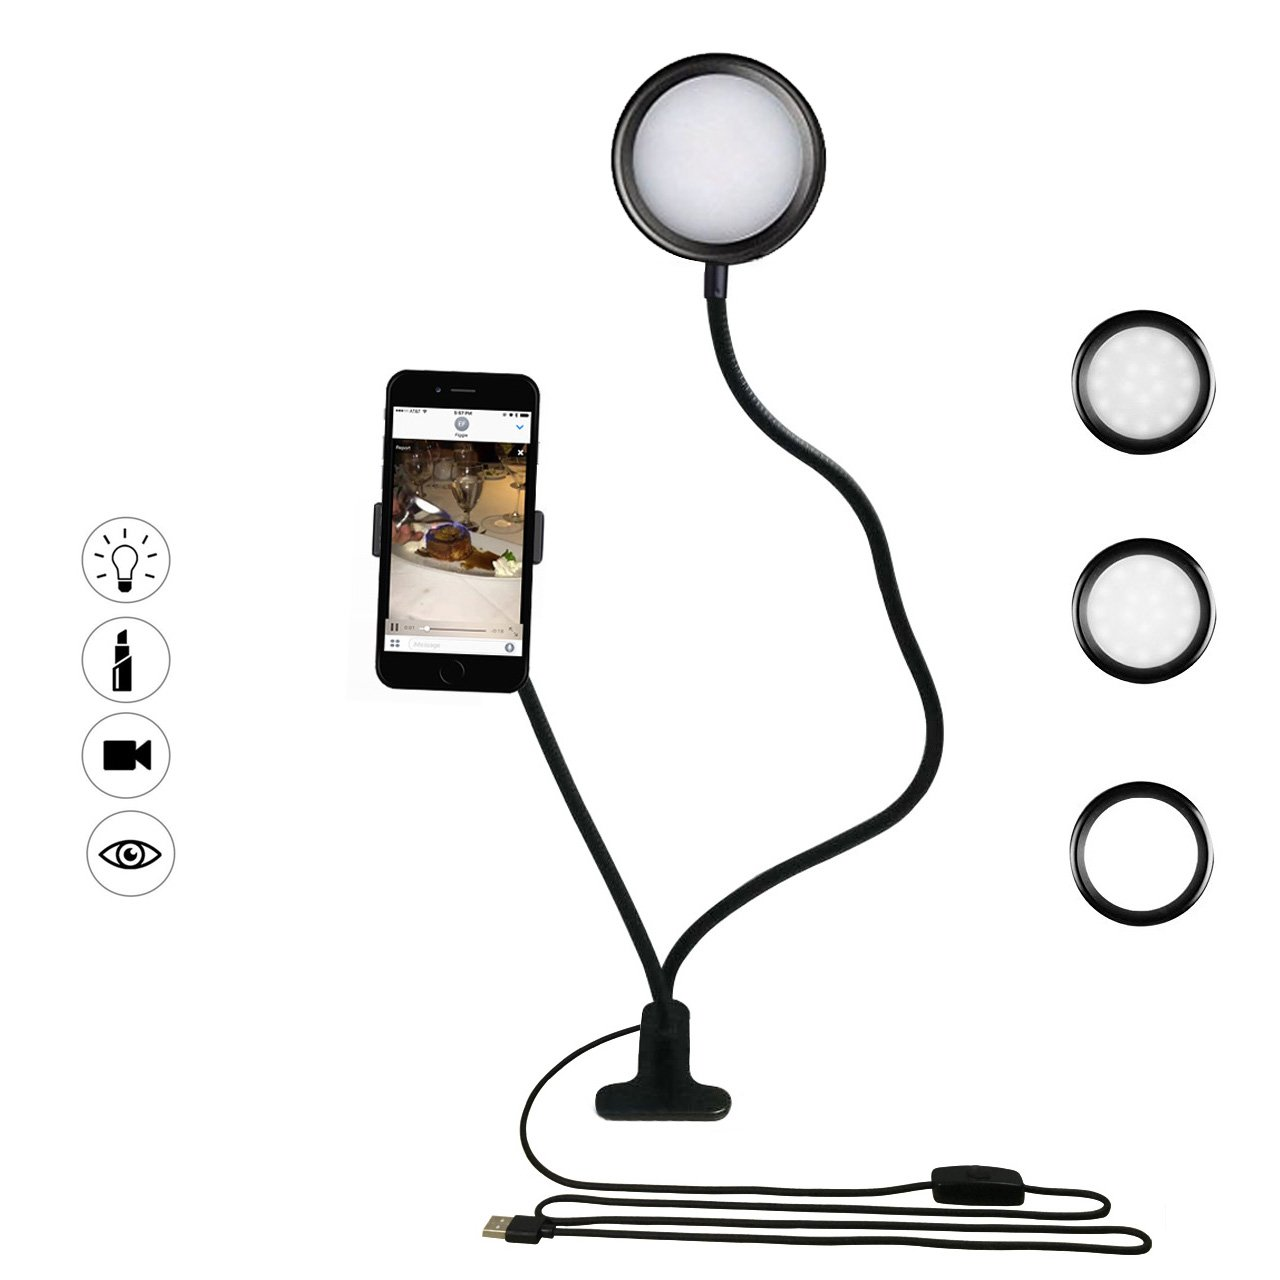 Smarki Cell Phone Holder Mount with Selfie LED Light Ring for Live Streaming Desk Reading Lamp Flexible 360°Rotating Clip Bracket for iPhone 8/X/7/6 Plus,Samsung,Huawei and more (One Color Light)